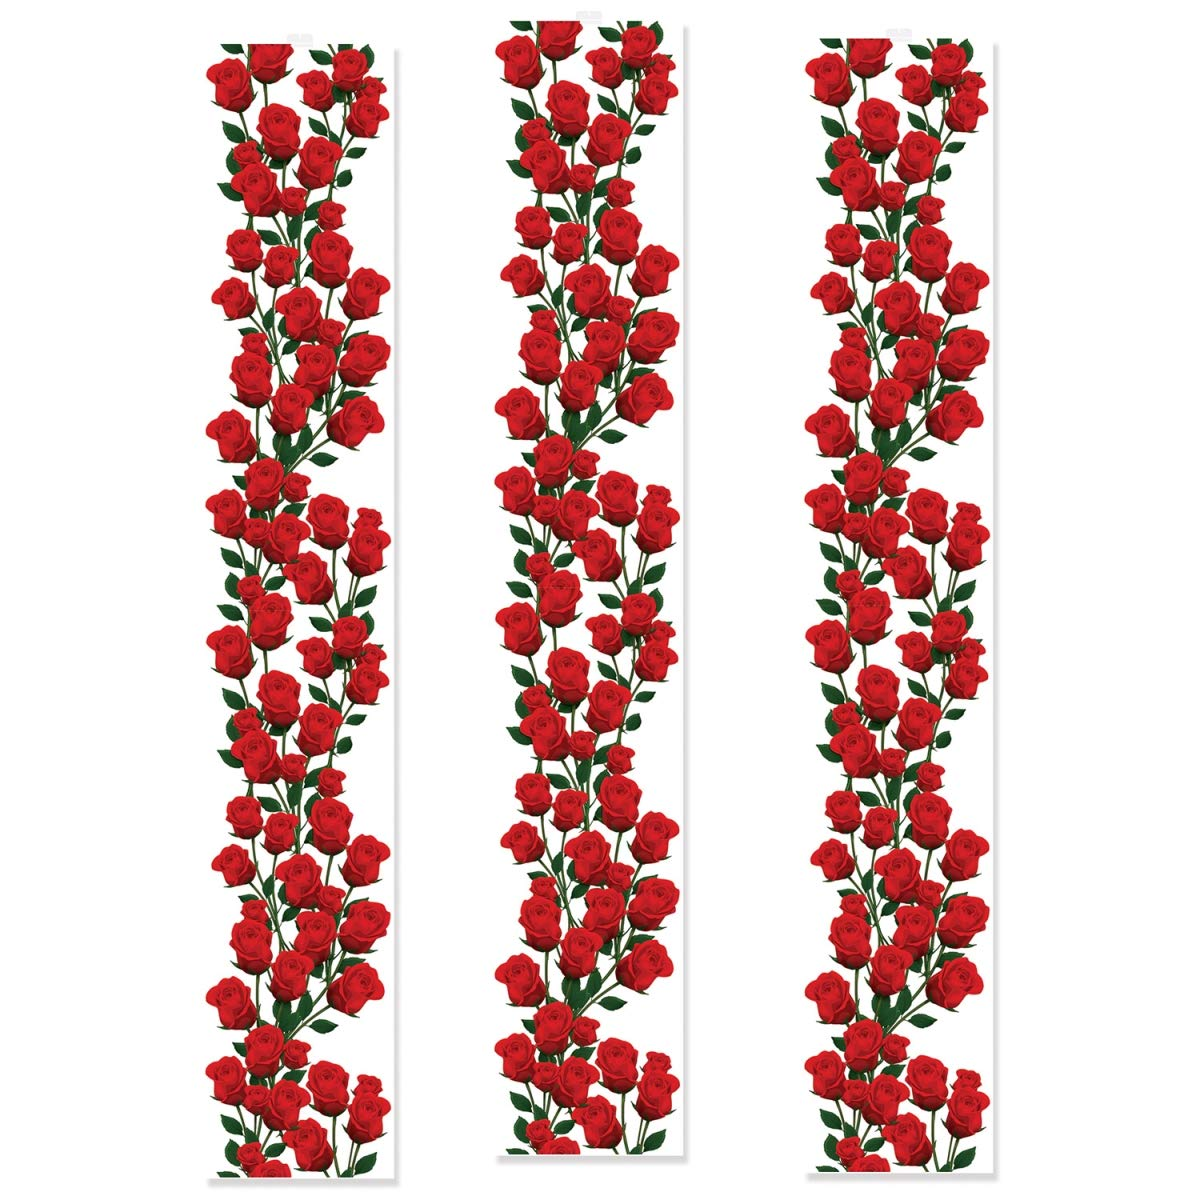 Beistle 54967 12 in. x 6 ft. Roses Party Panels - Pack of 12 by Beistle (Image #1)